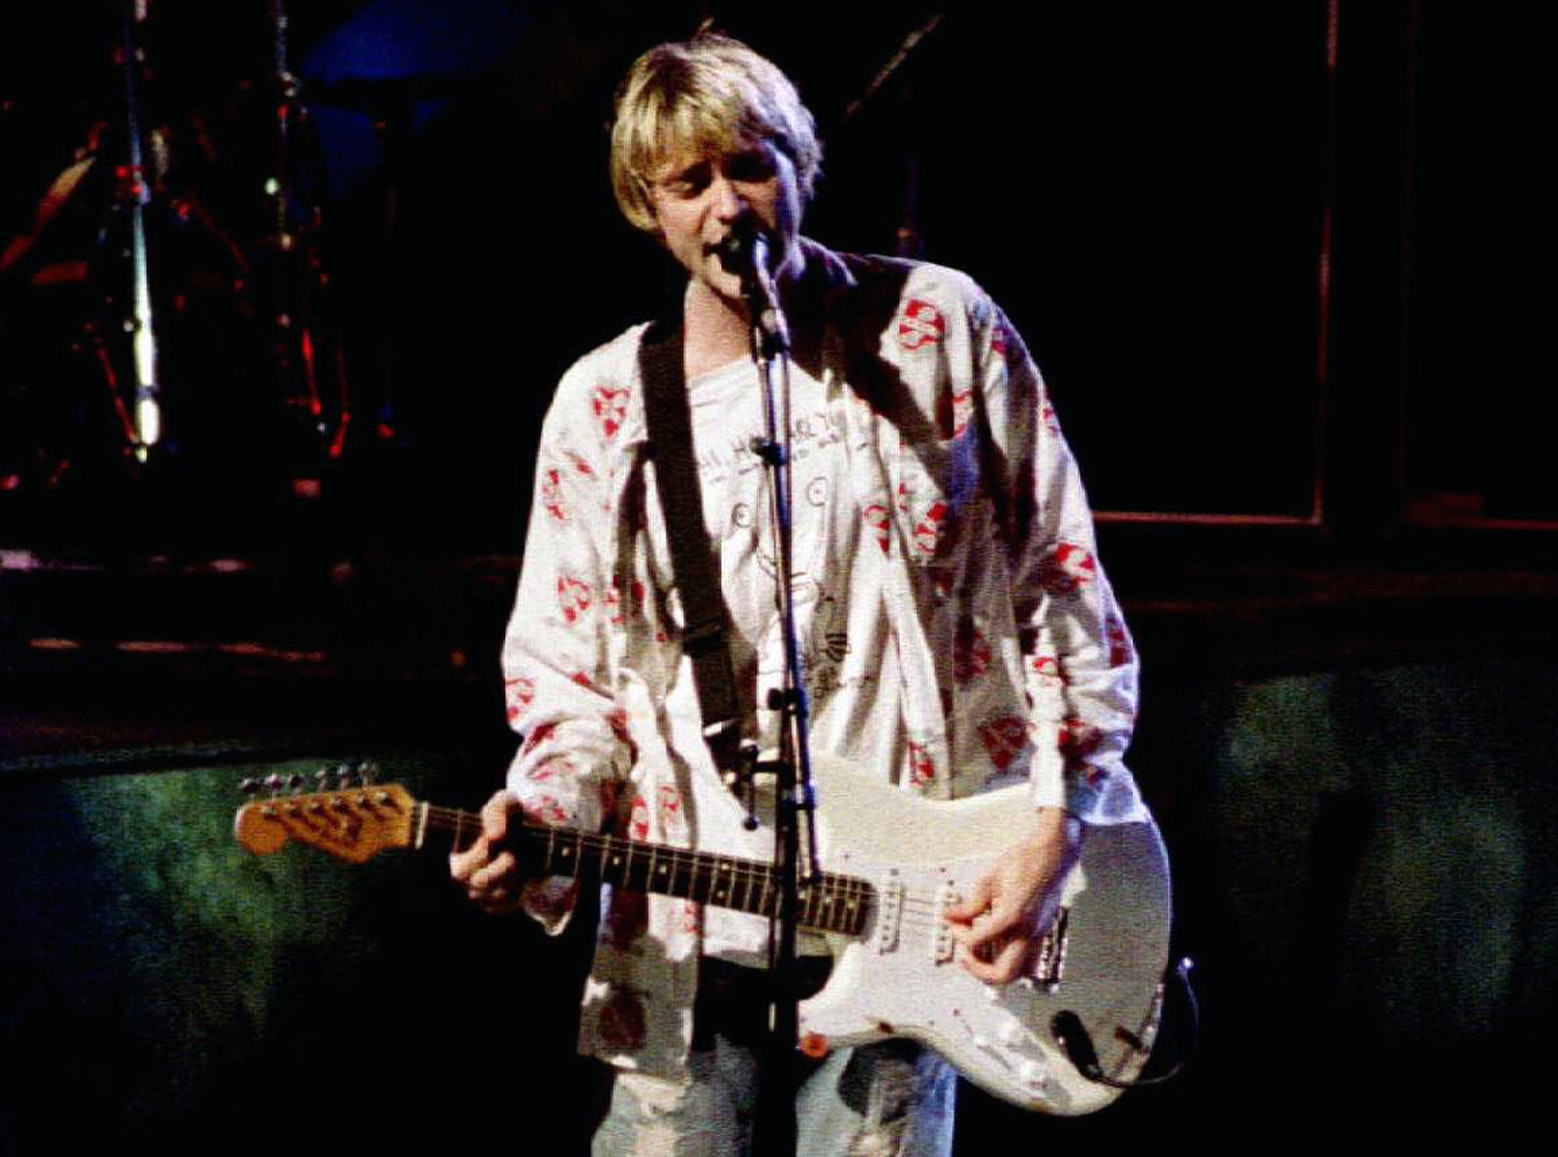 a report on the death of kurt cobain the leader of nirvana a grunge band It's been 20 years since kurt cobain, leader of the rock band nirvana, committed suicide it was april 5, 1994, and his death left a legion of fans grieving his loss.